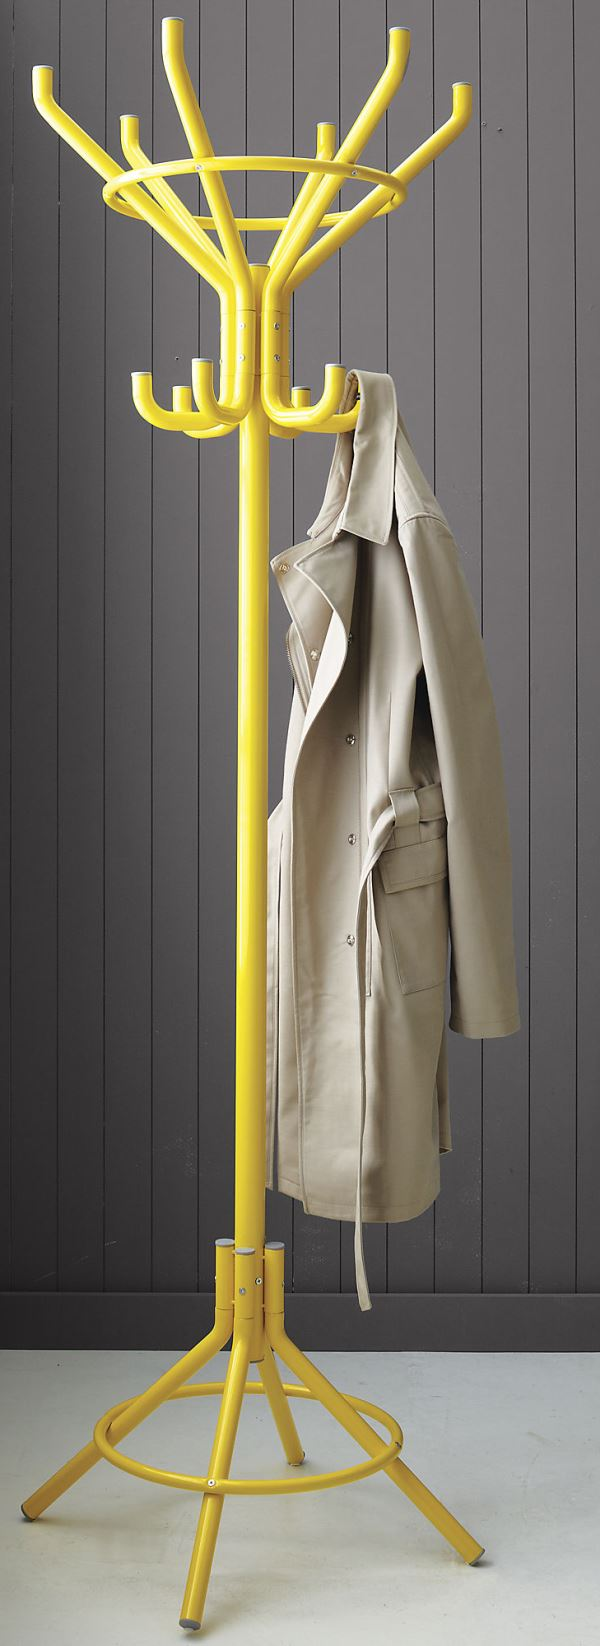 Bright yellow coat rack